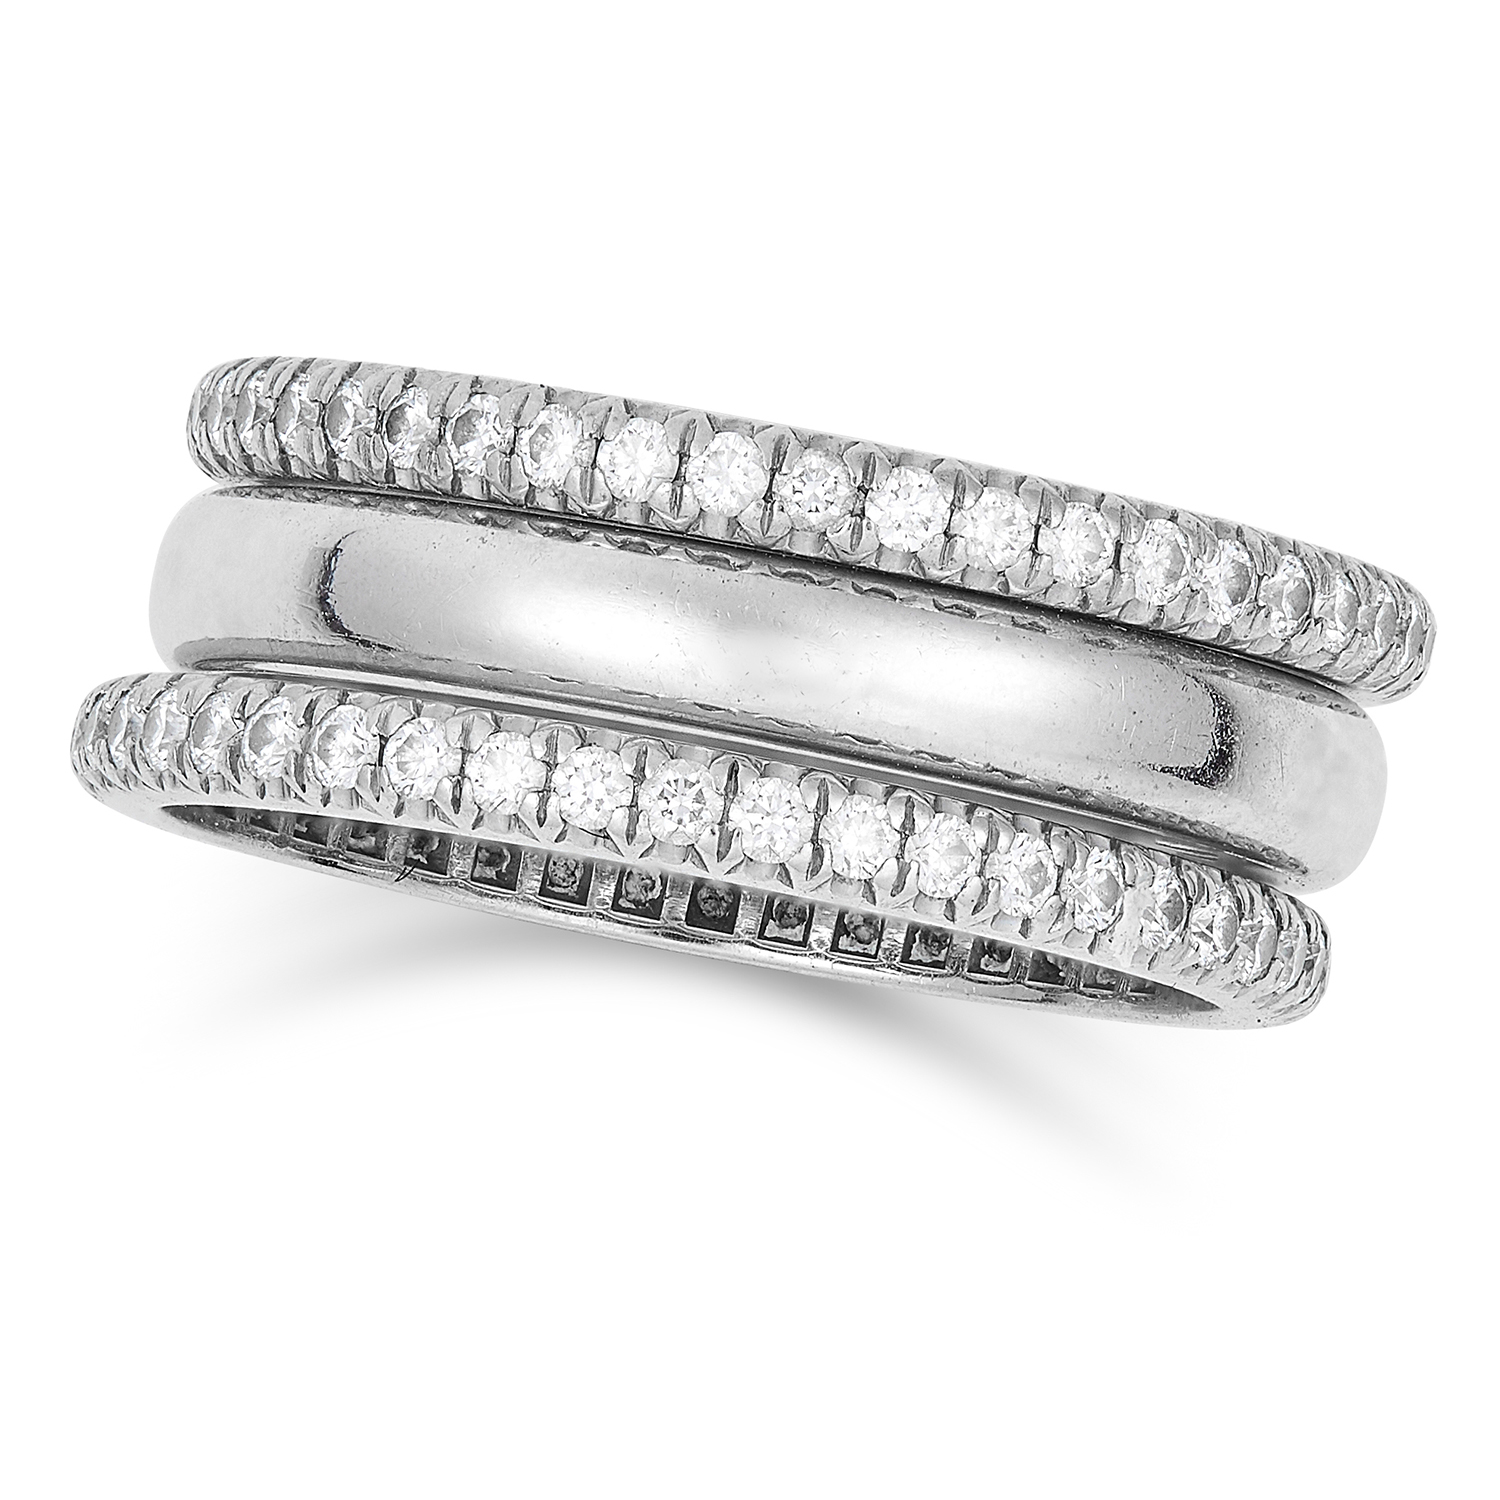 DIAMOND RING SET, TIFFANY in platinum, comprising of two round cut diamond eternity bands and one